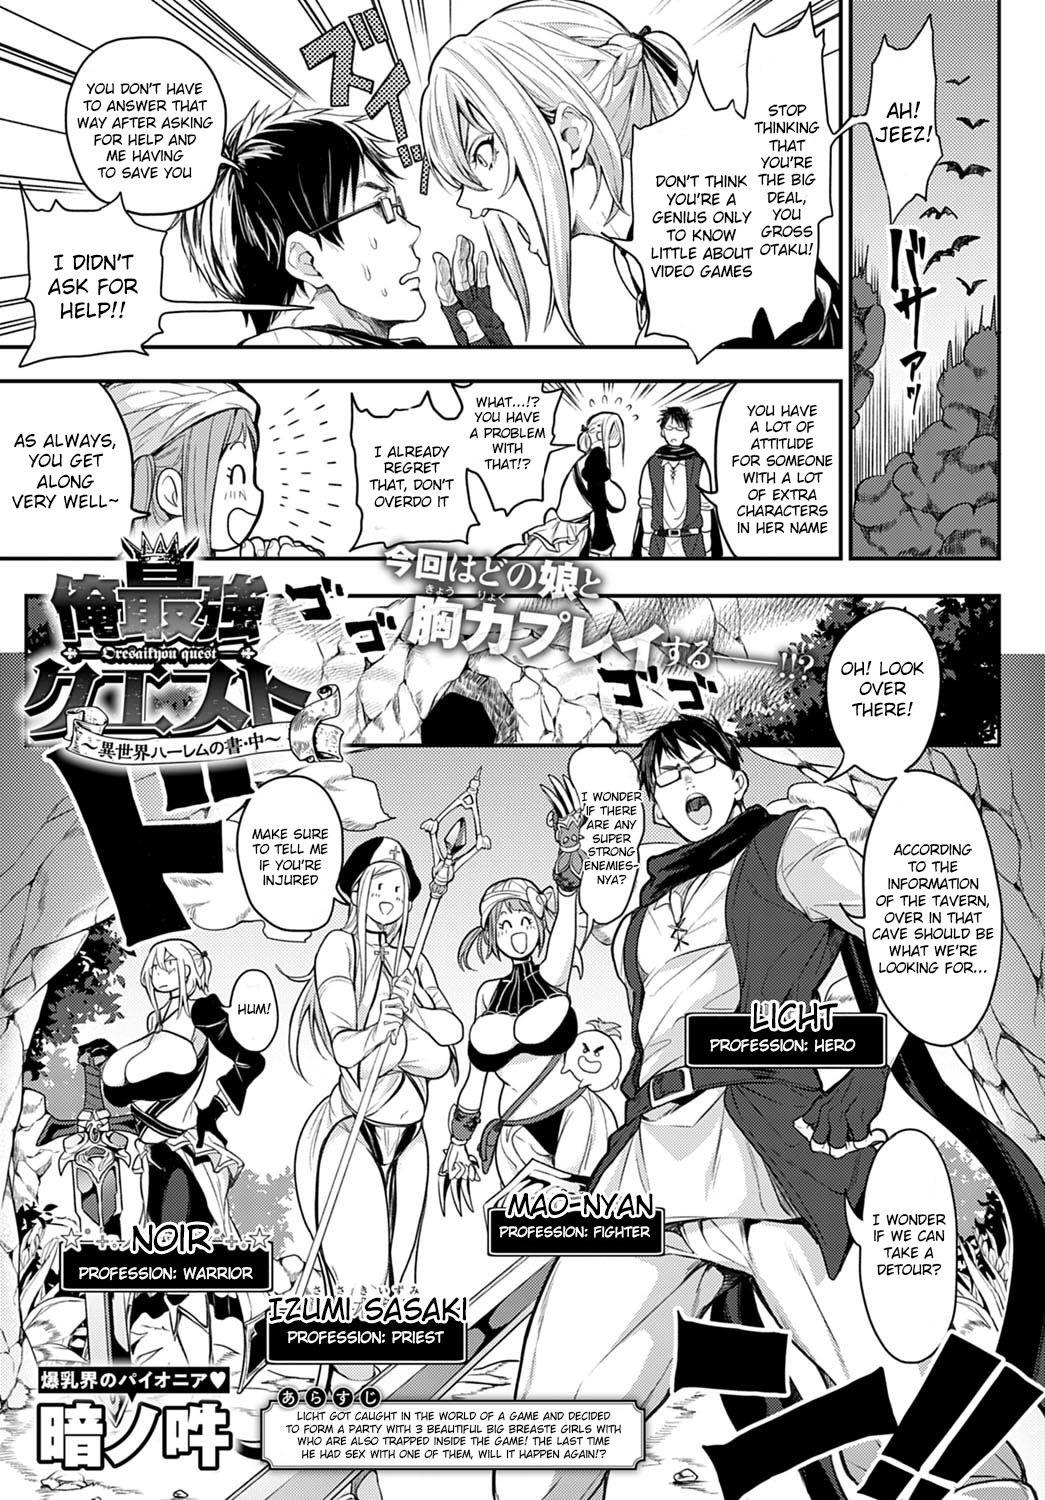 [Announ] Ore Saikyou Quest ~Isekai Harem no Sho~ | My story with my Harem in another world [English] [Digital] 20